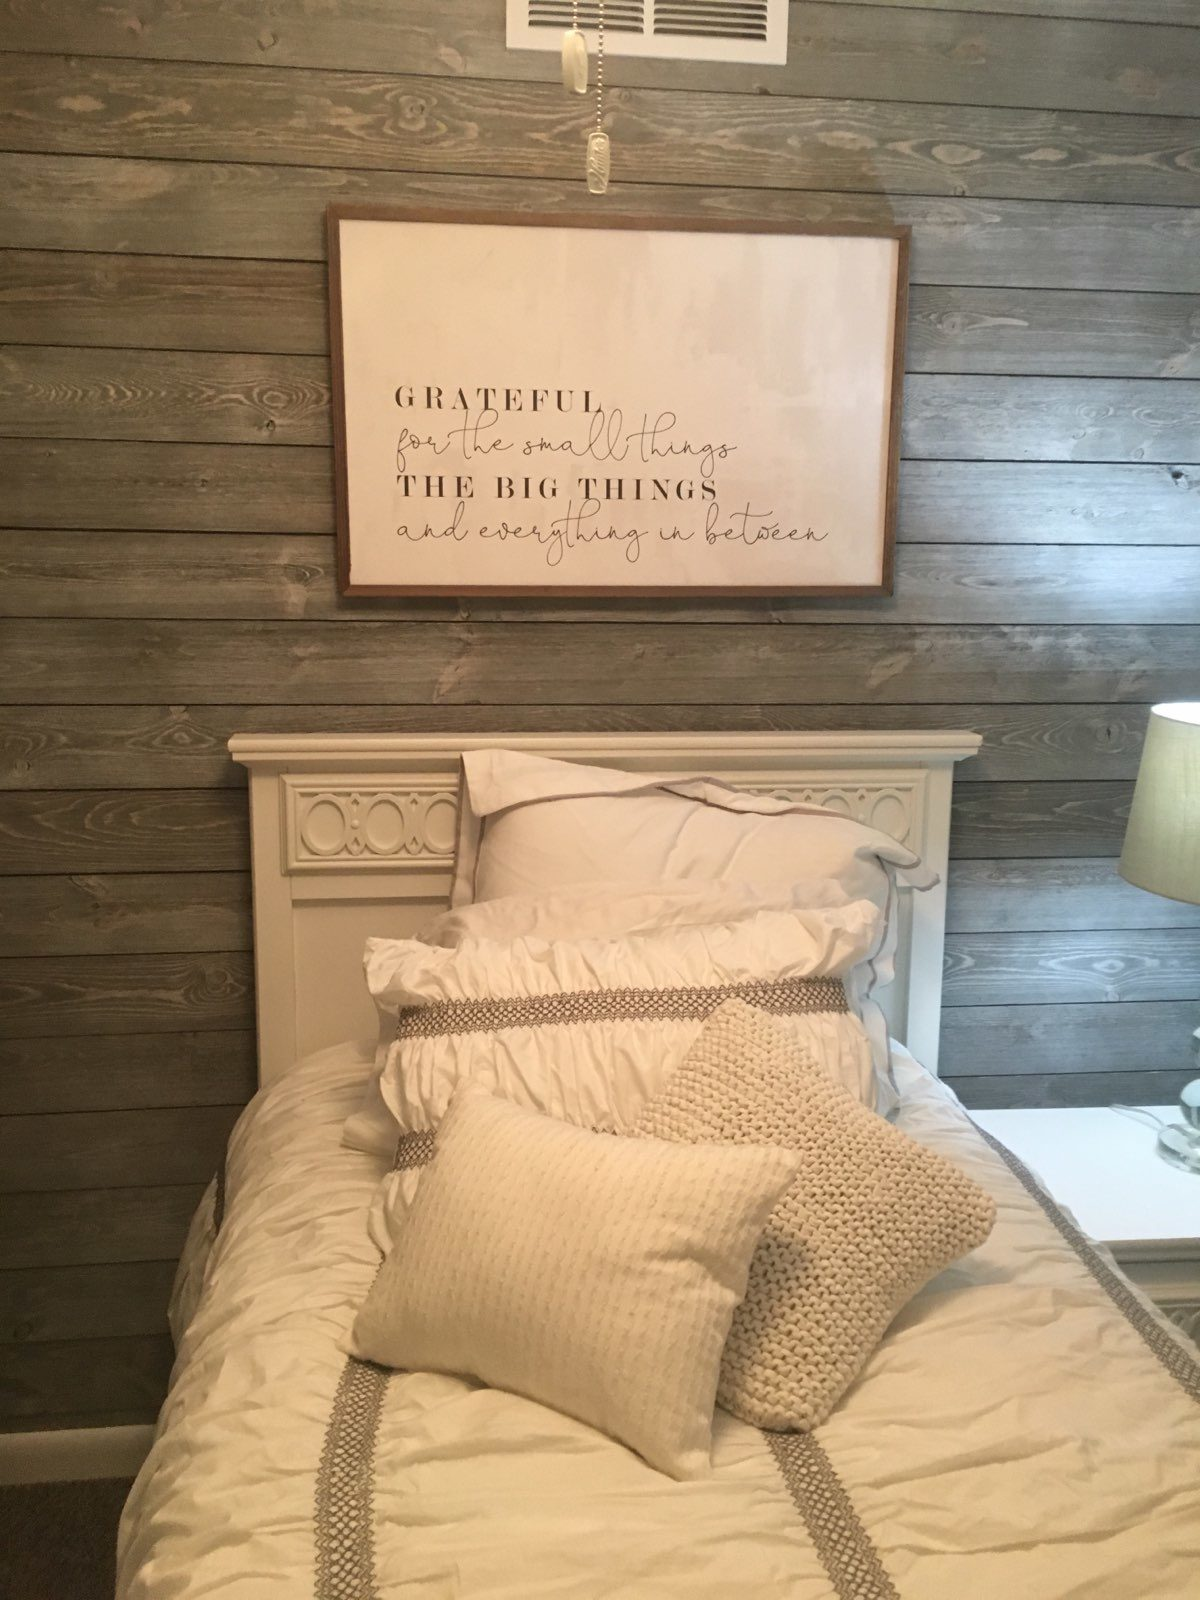 Bedroom Wood Walls using Great American Spaces ShipLap in Gray Sky